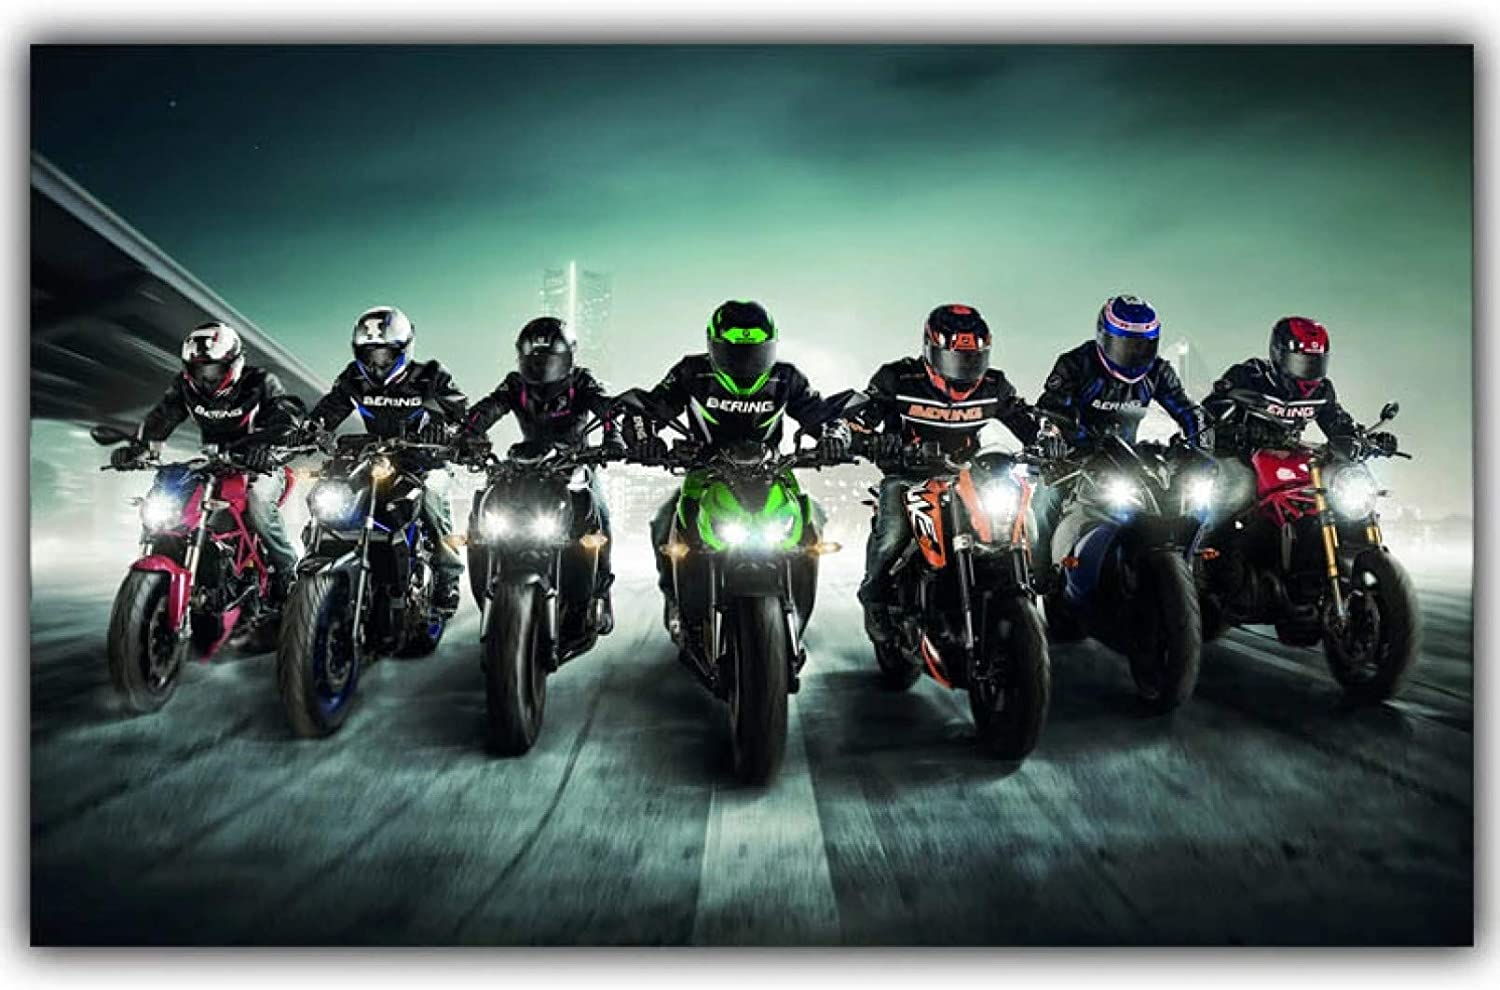 MDKAZ Canvas Wall Art Painting Dec Super beauty product restock quality top! Poster Detroit Mall Racing Home Motorcycle